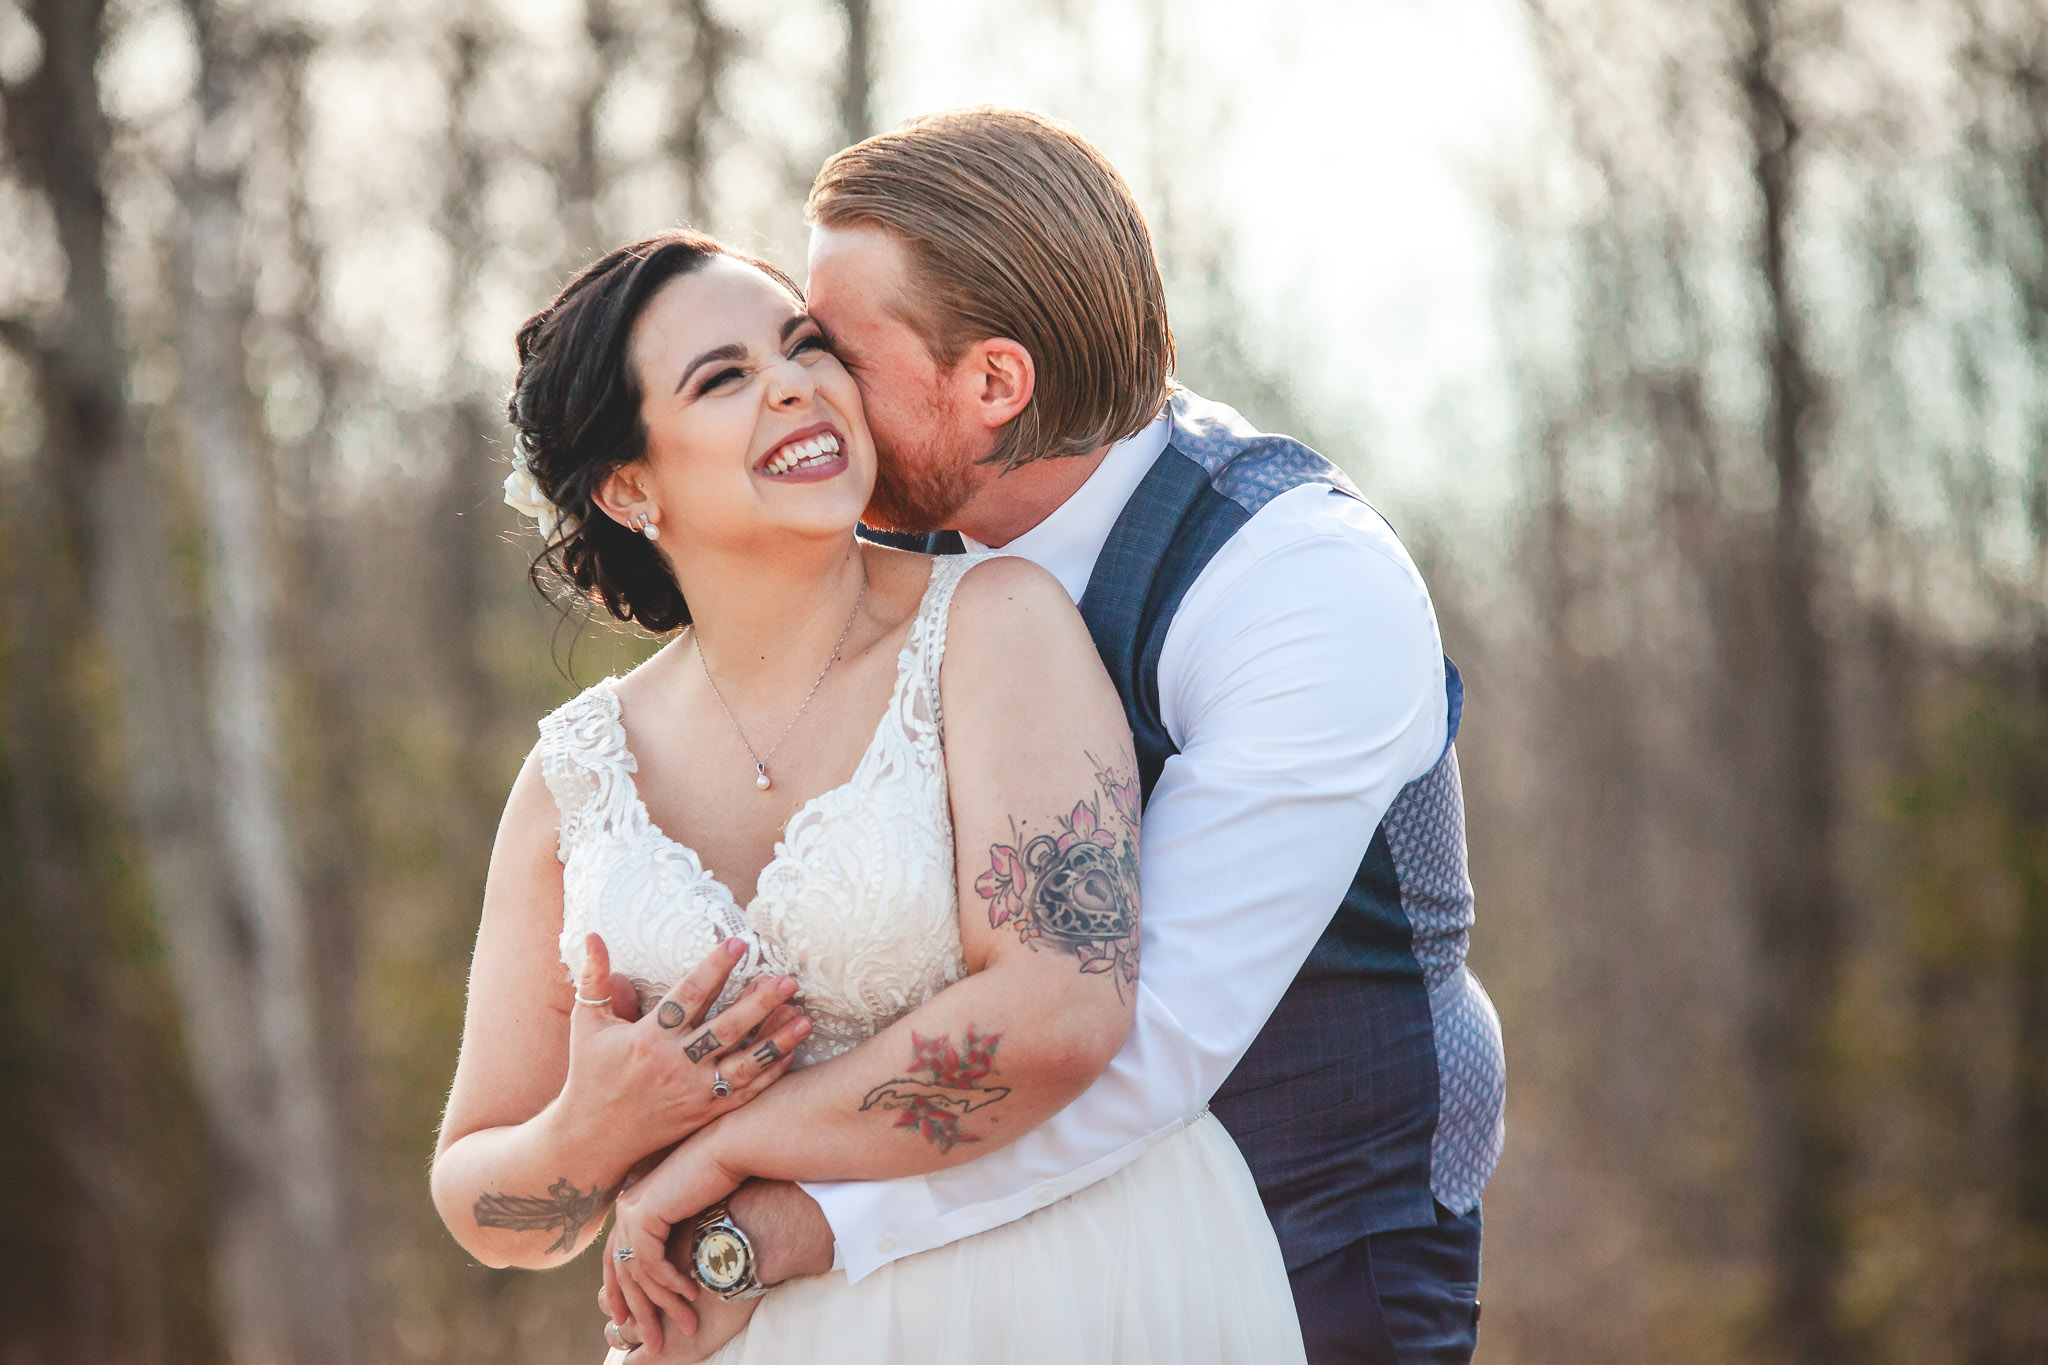 Amy D Photography- Bride and Groom-Barrie Wedding Photography Muskoka Wedding Photography Bride and Groom Poses Bride and Groom Train Tracks Snow Valley Wedding-56.jpg